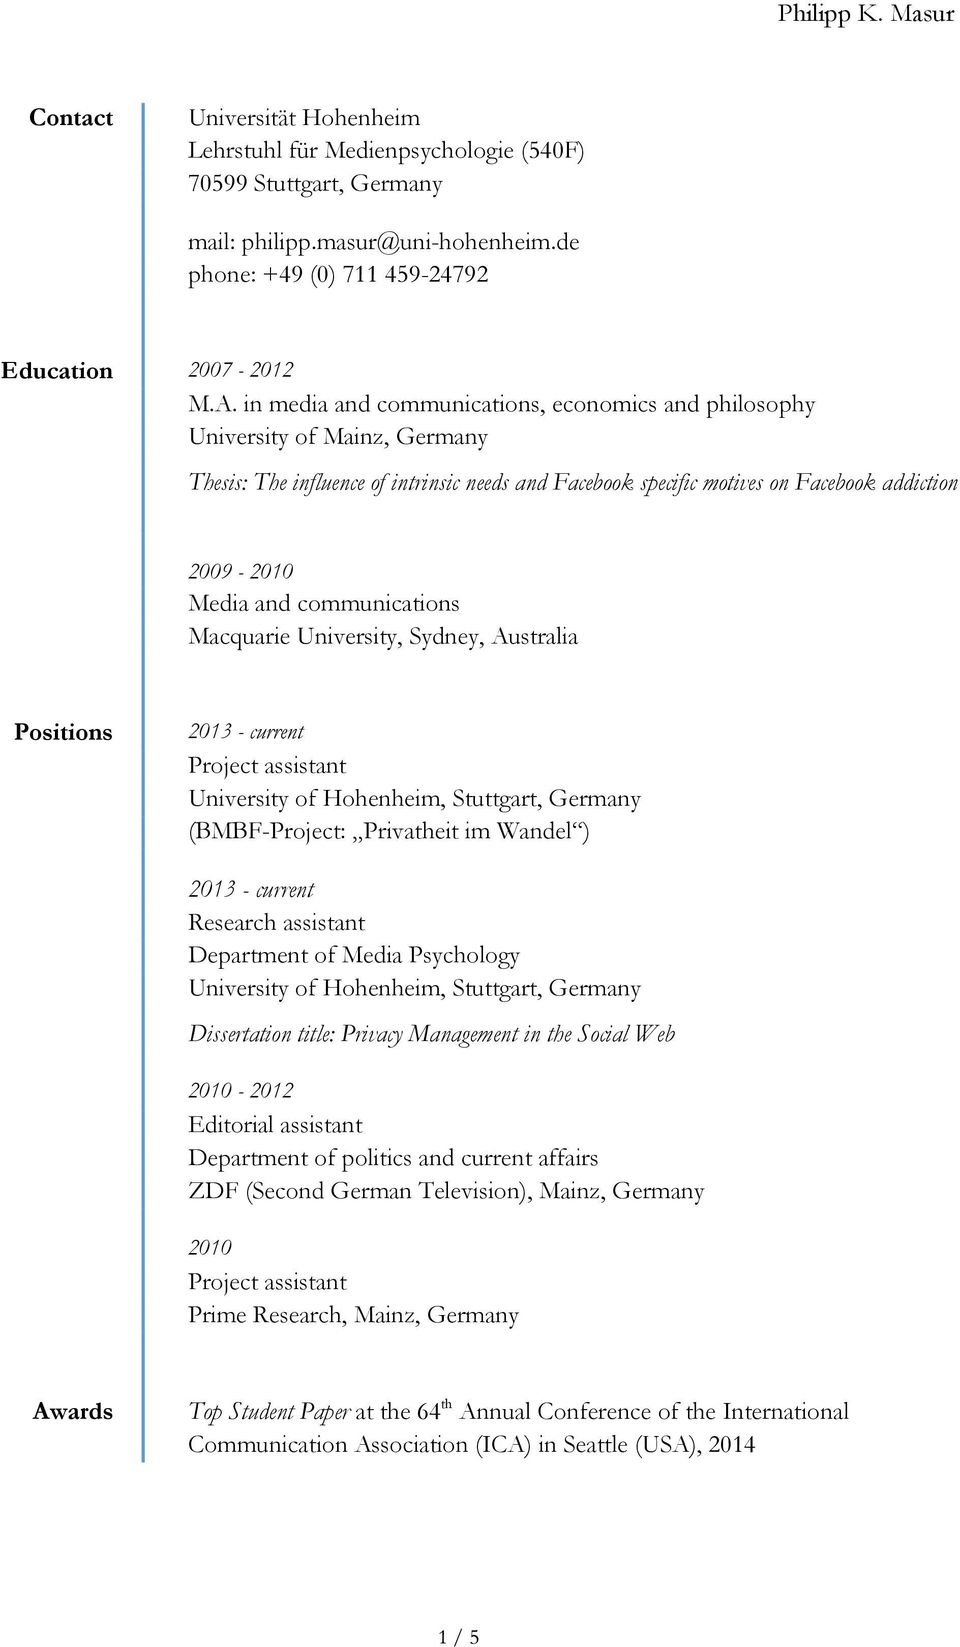 communications Macquarie University, Sydney, Australia Positions 2013 - current Project assistant University of Hohenheim, Stuttgart, Germany (BMBF-Project: Privatheit im Wandel ) 2013 - current